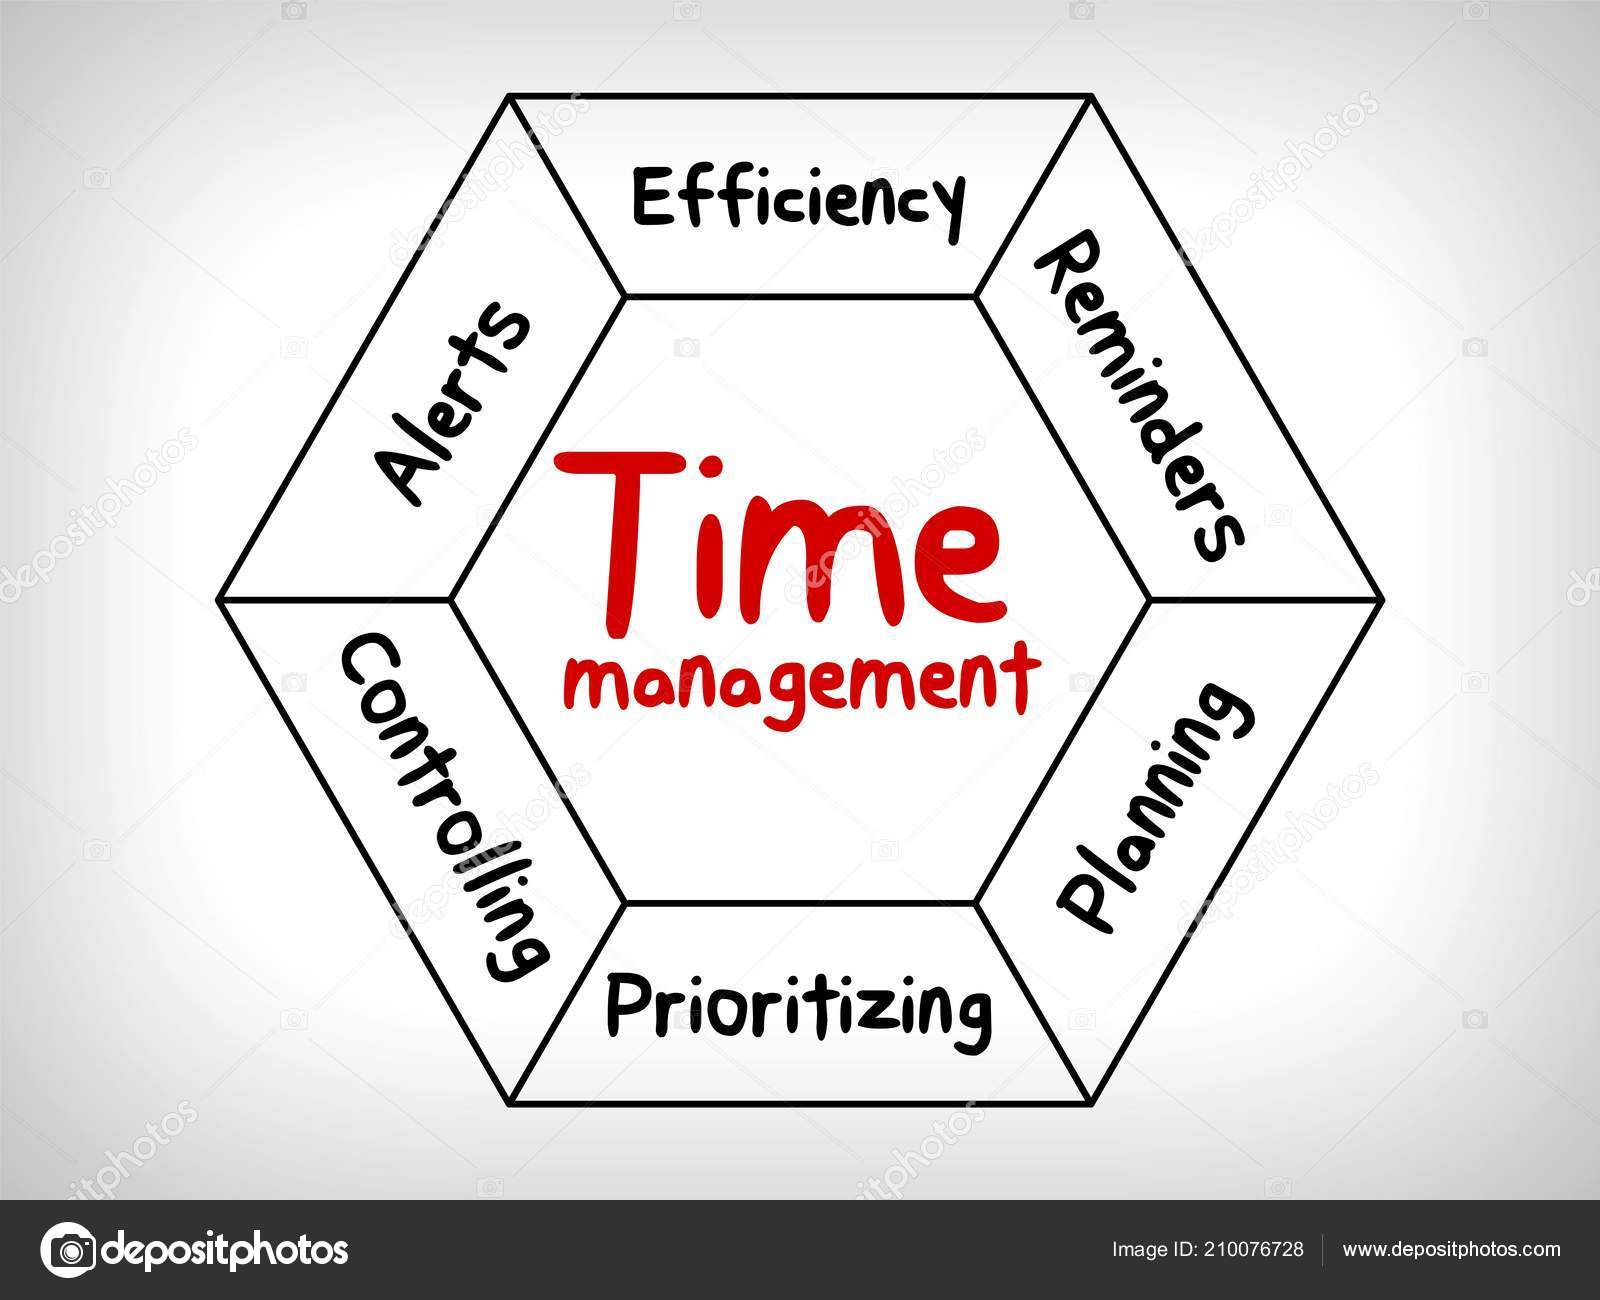 the effectiveness of time management strategies Time management refers to numerous techniques and skills that can help a person to make use of the available time in the most efficient way and to accomplish goals, tasks and projects within the predetermined period of time.